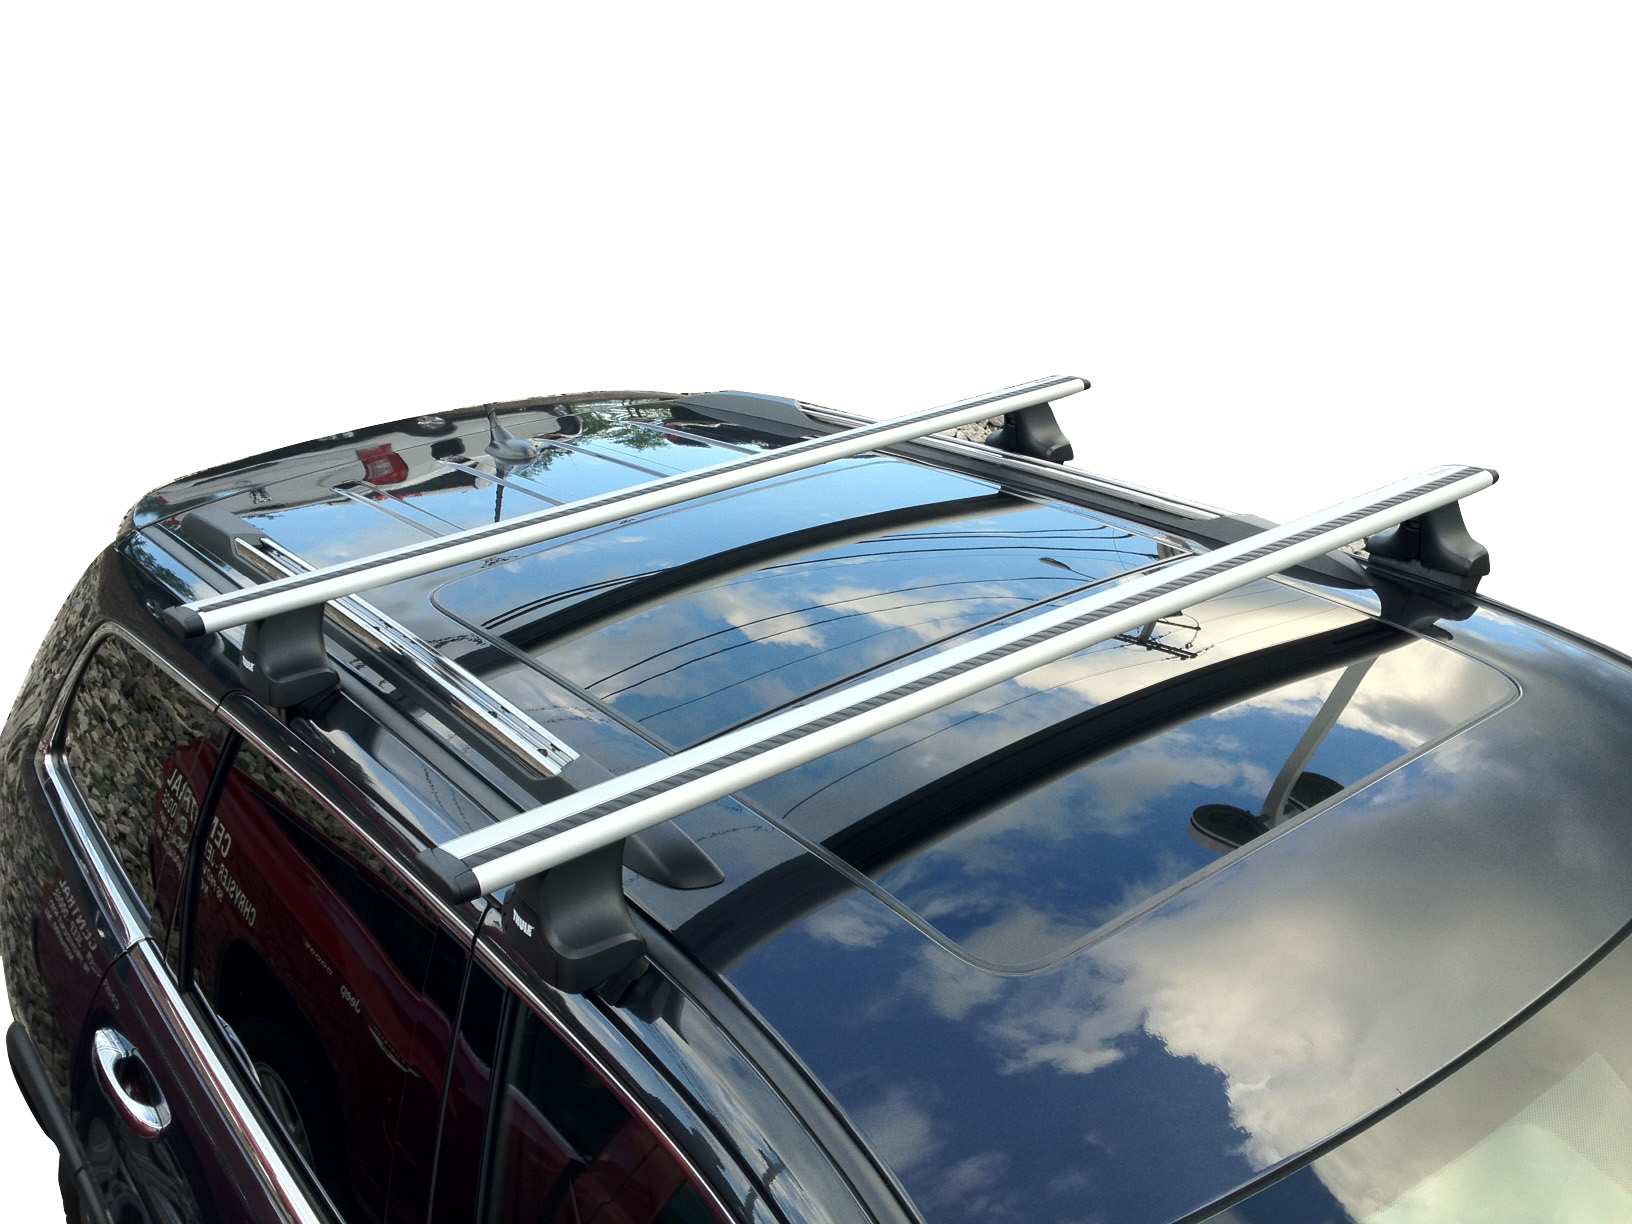 roof rack grand new avanza all yaris trd jeep thule carrier parts and packs justforjeeps